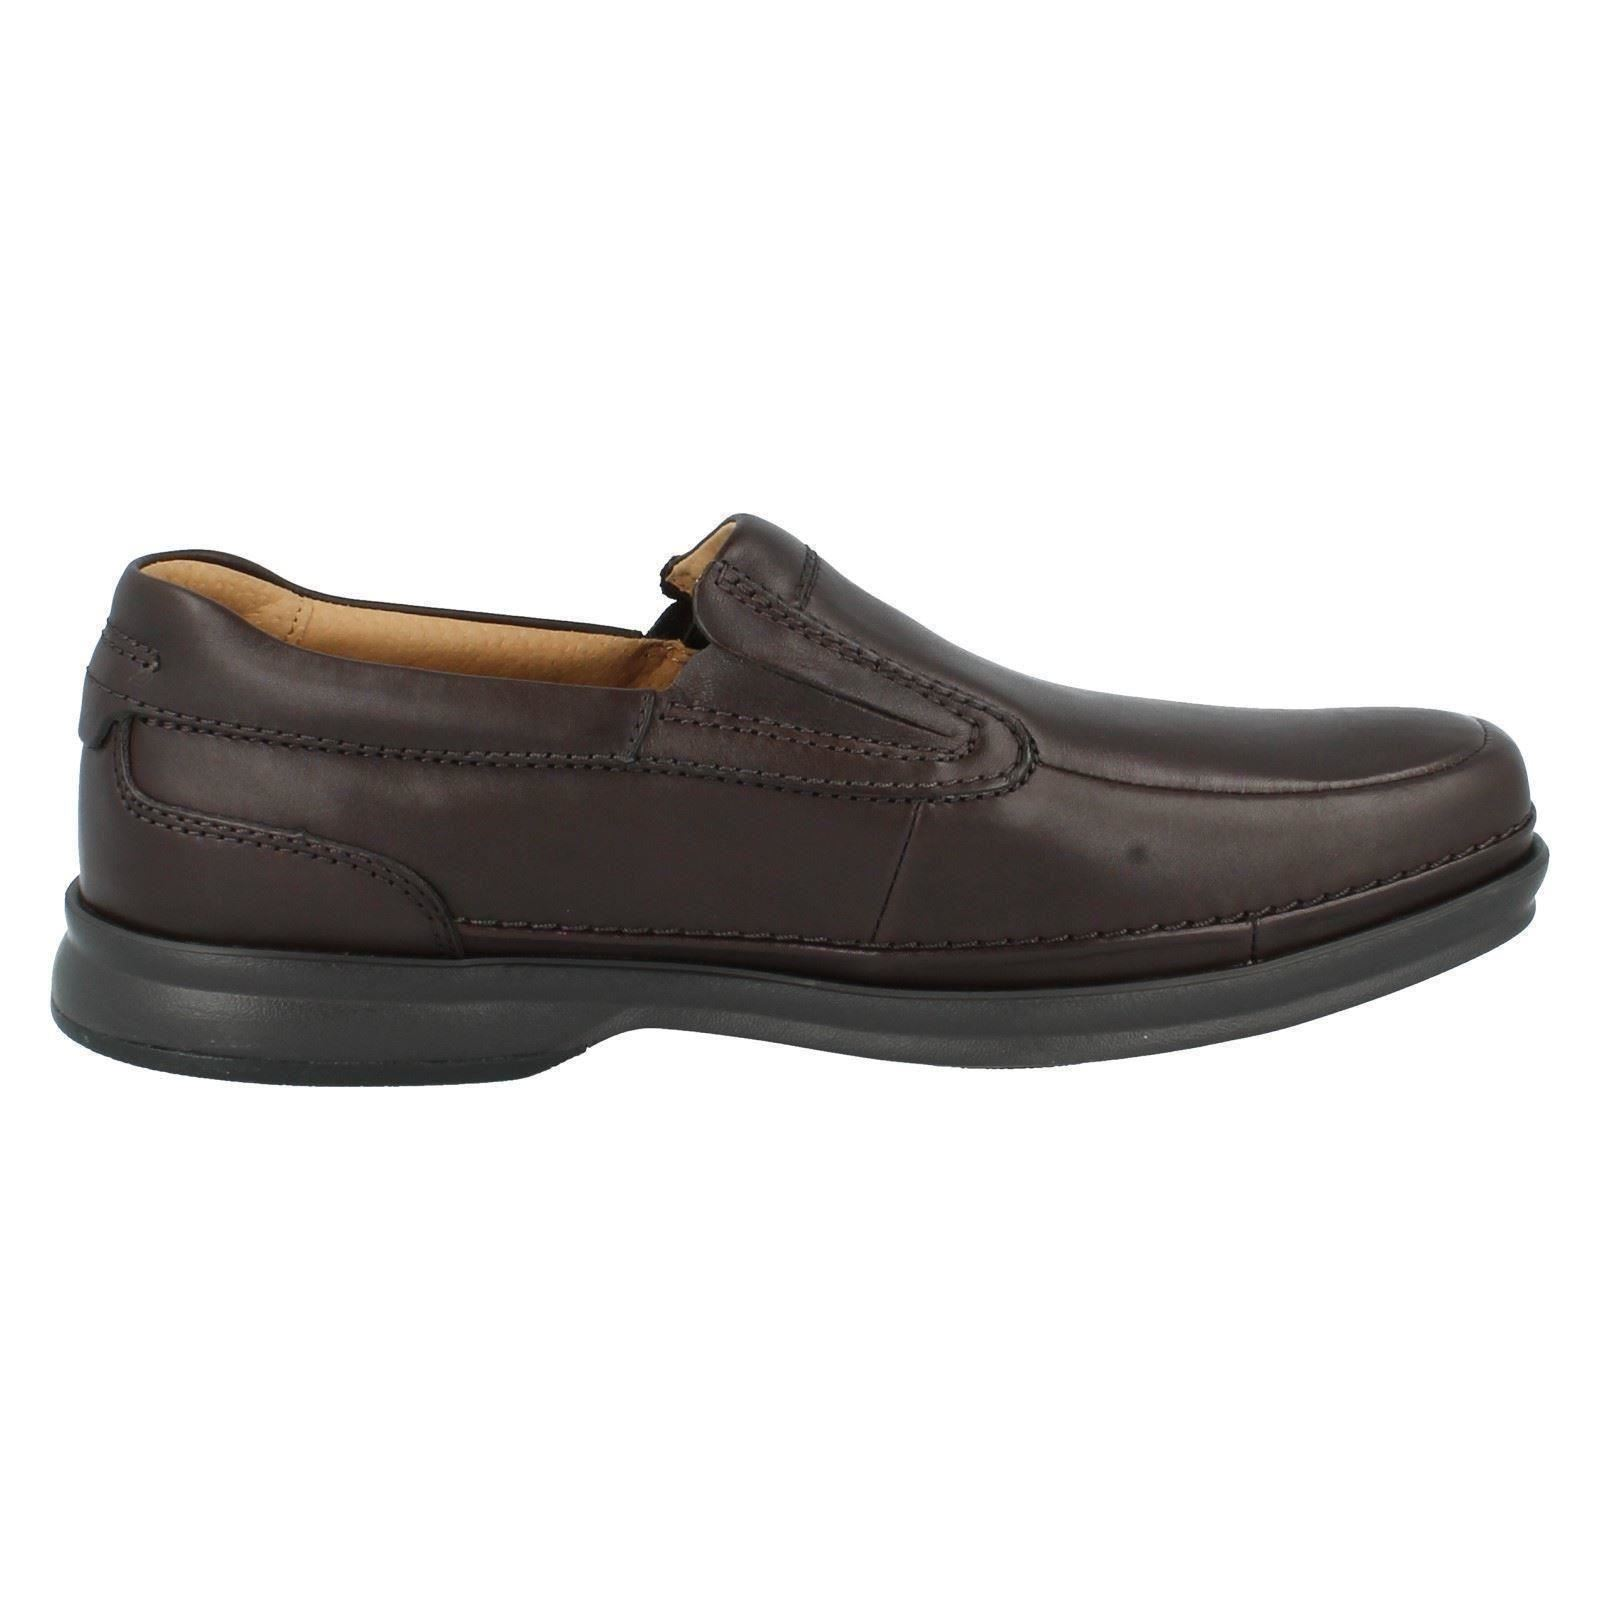 Men's Shoes Clarks Formal Slip On Shoes Men's Style -  Scopic Step a76fc8